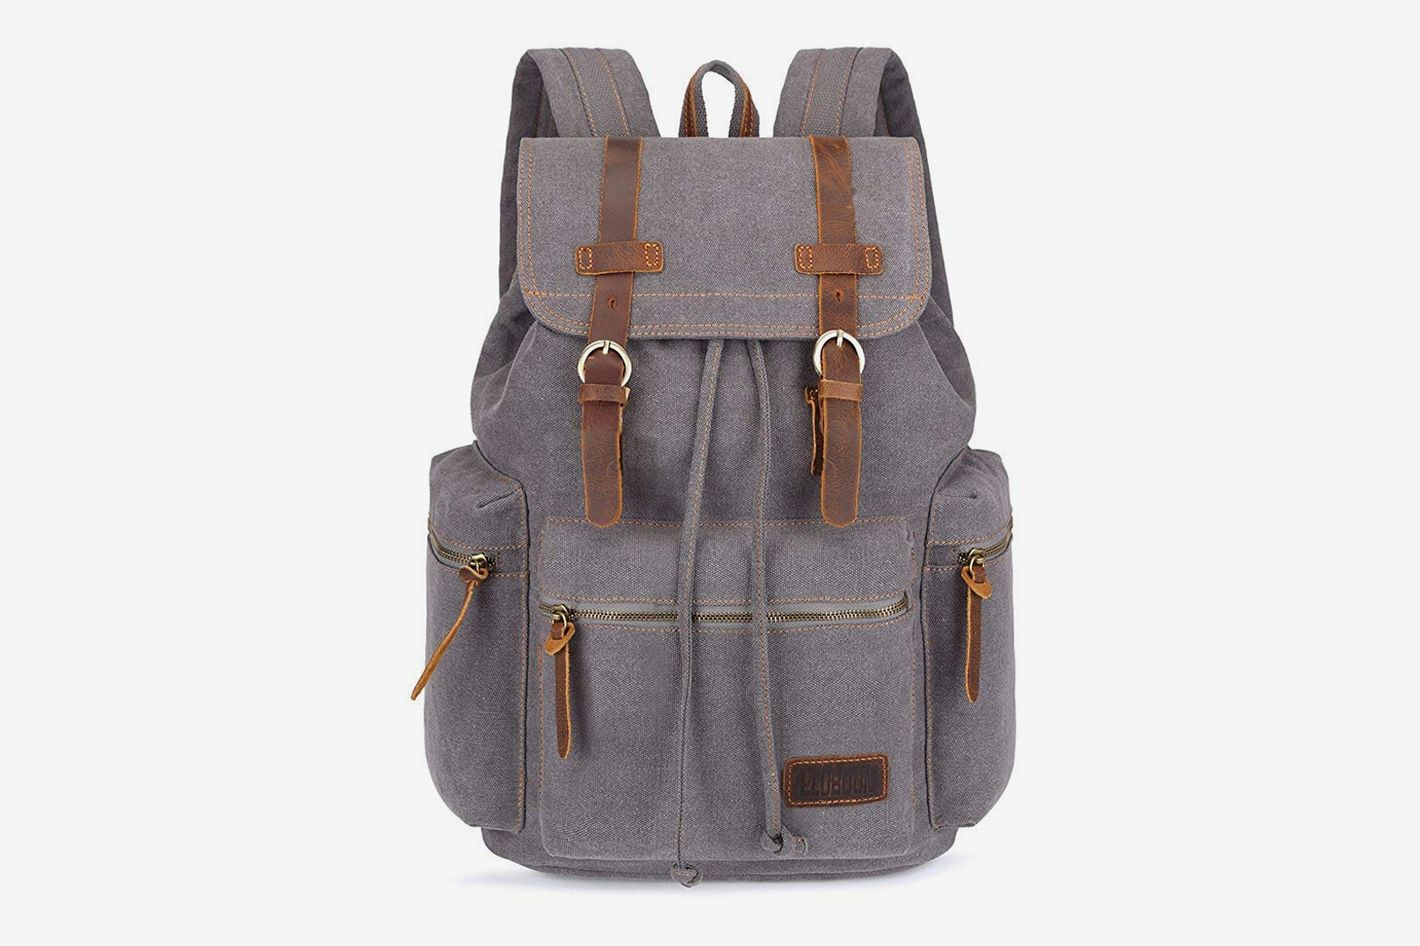 BLUBOON Canvas Vintage Travel Backpack with Leather Trim e14e02832a80f